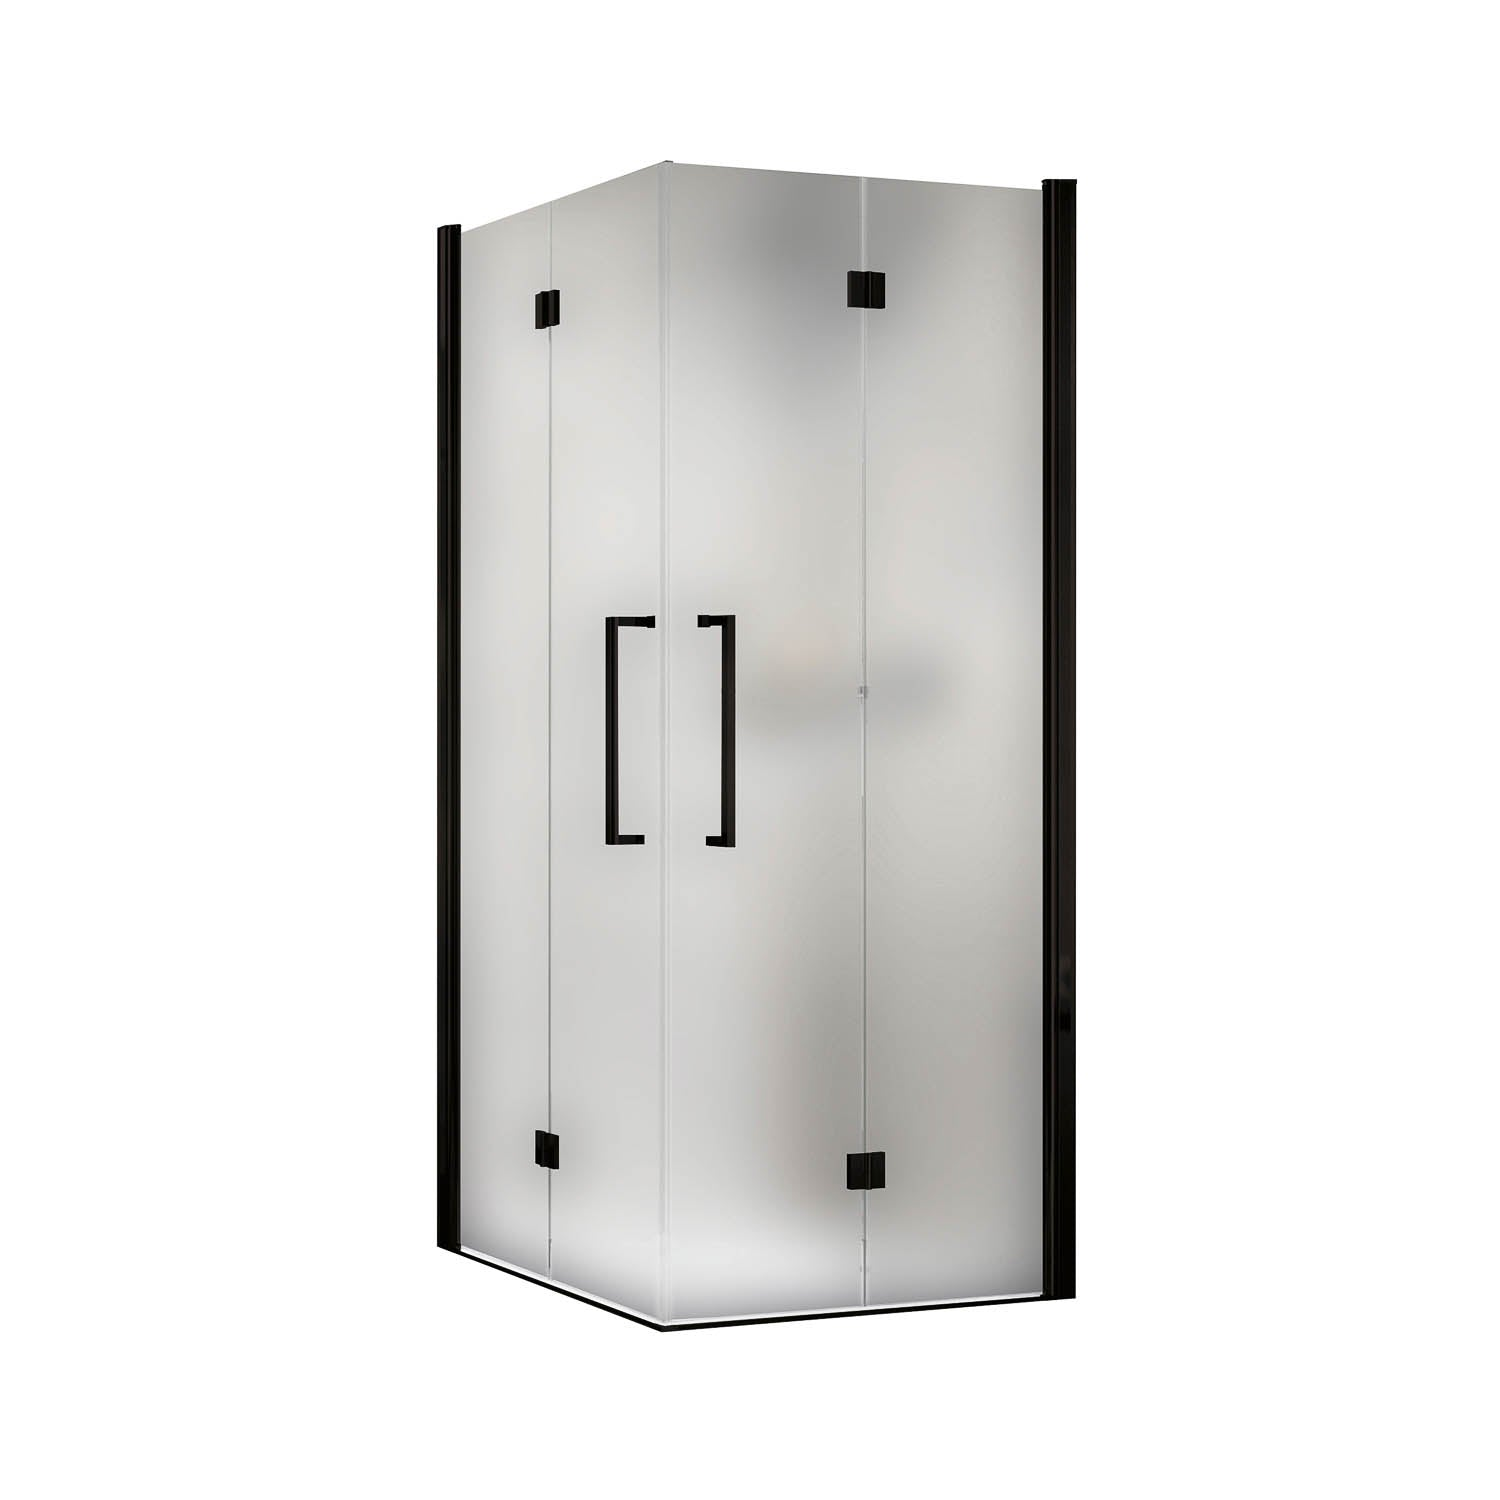 750-770mm Bliss Bi-folding Screen Frosted Glass with a matt black finish on a white background